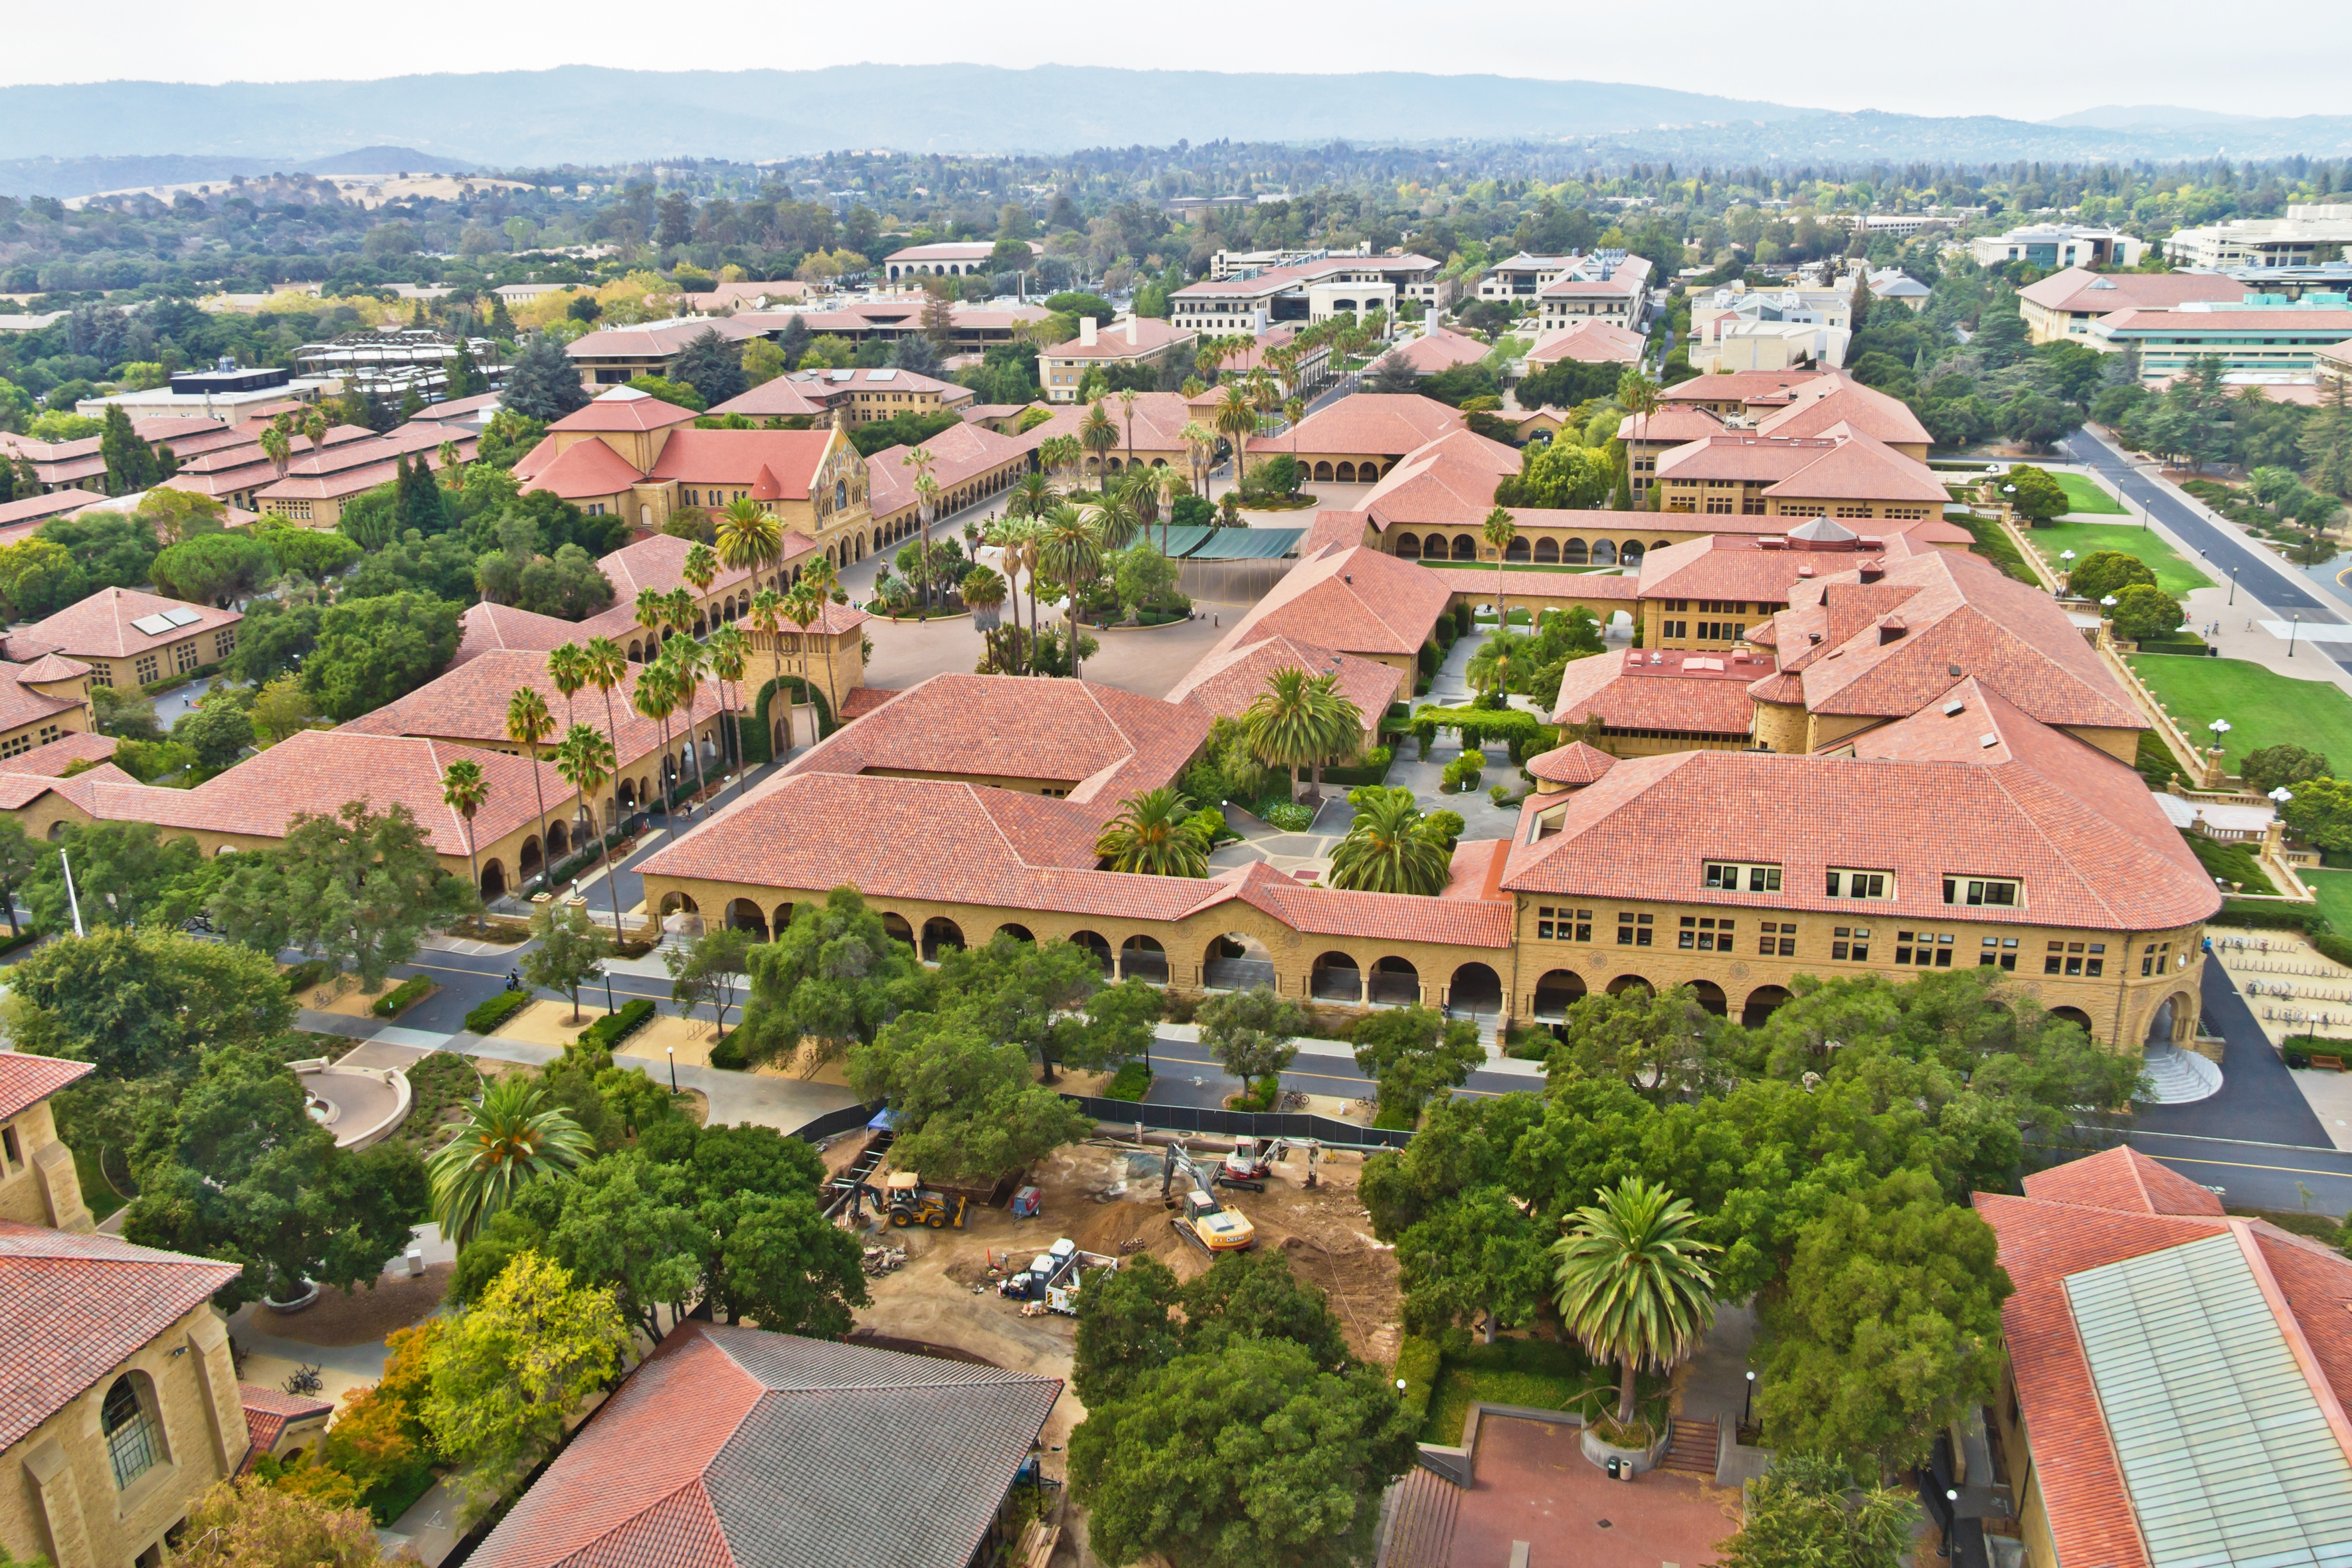 An aerial photo of Palo Alto, including historic Stanford buildings.